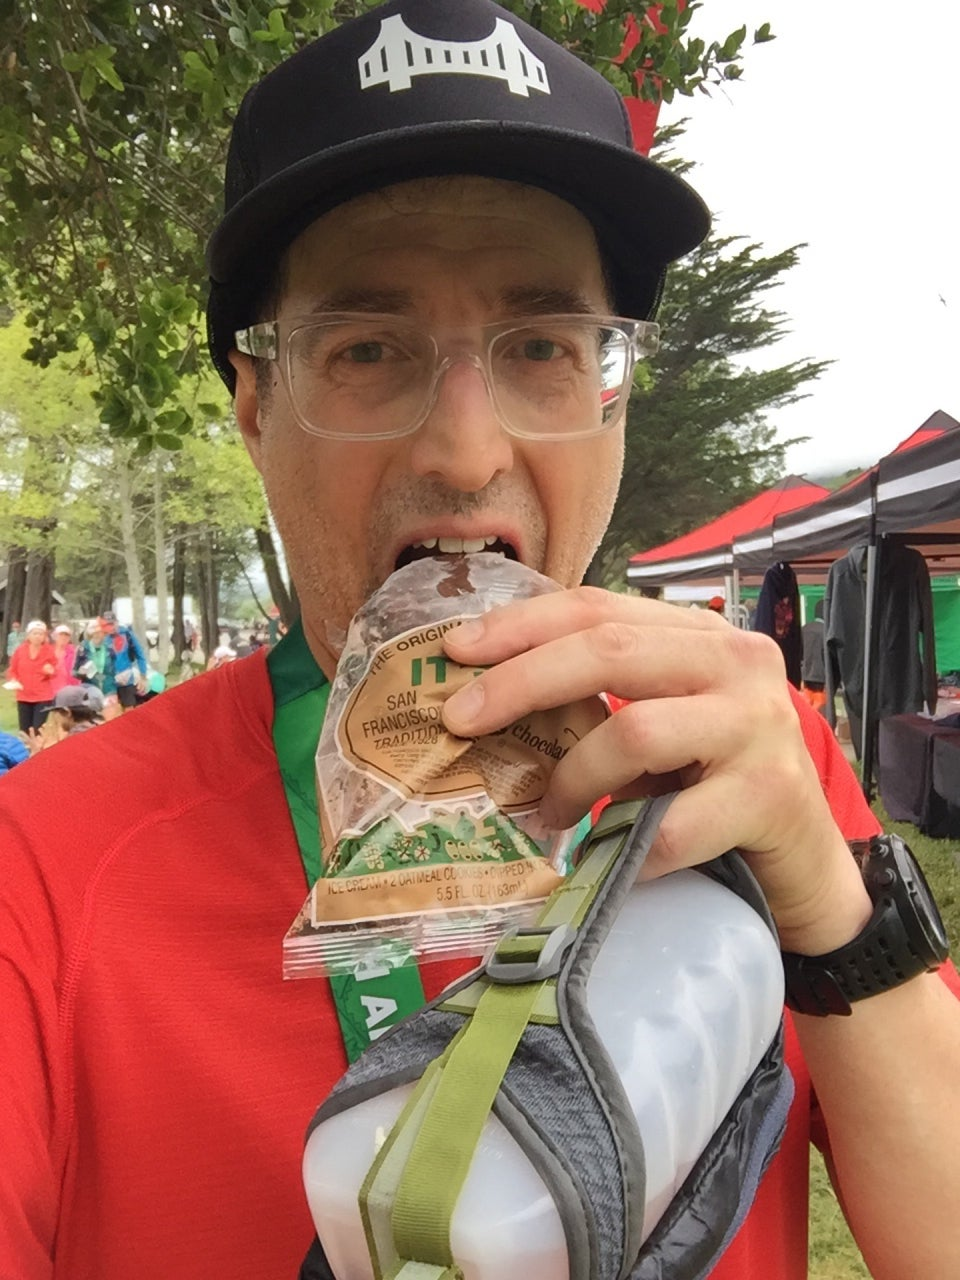 Tantek about to eat an It's It after finishing the Double Dipsea race, trees, other runners, and race tents behind him